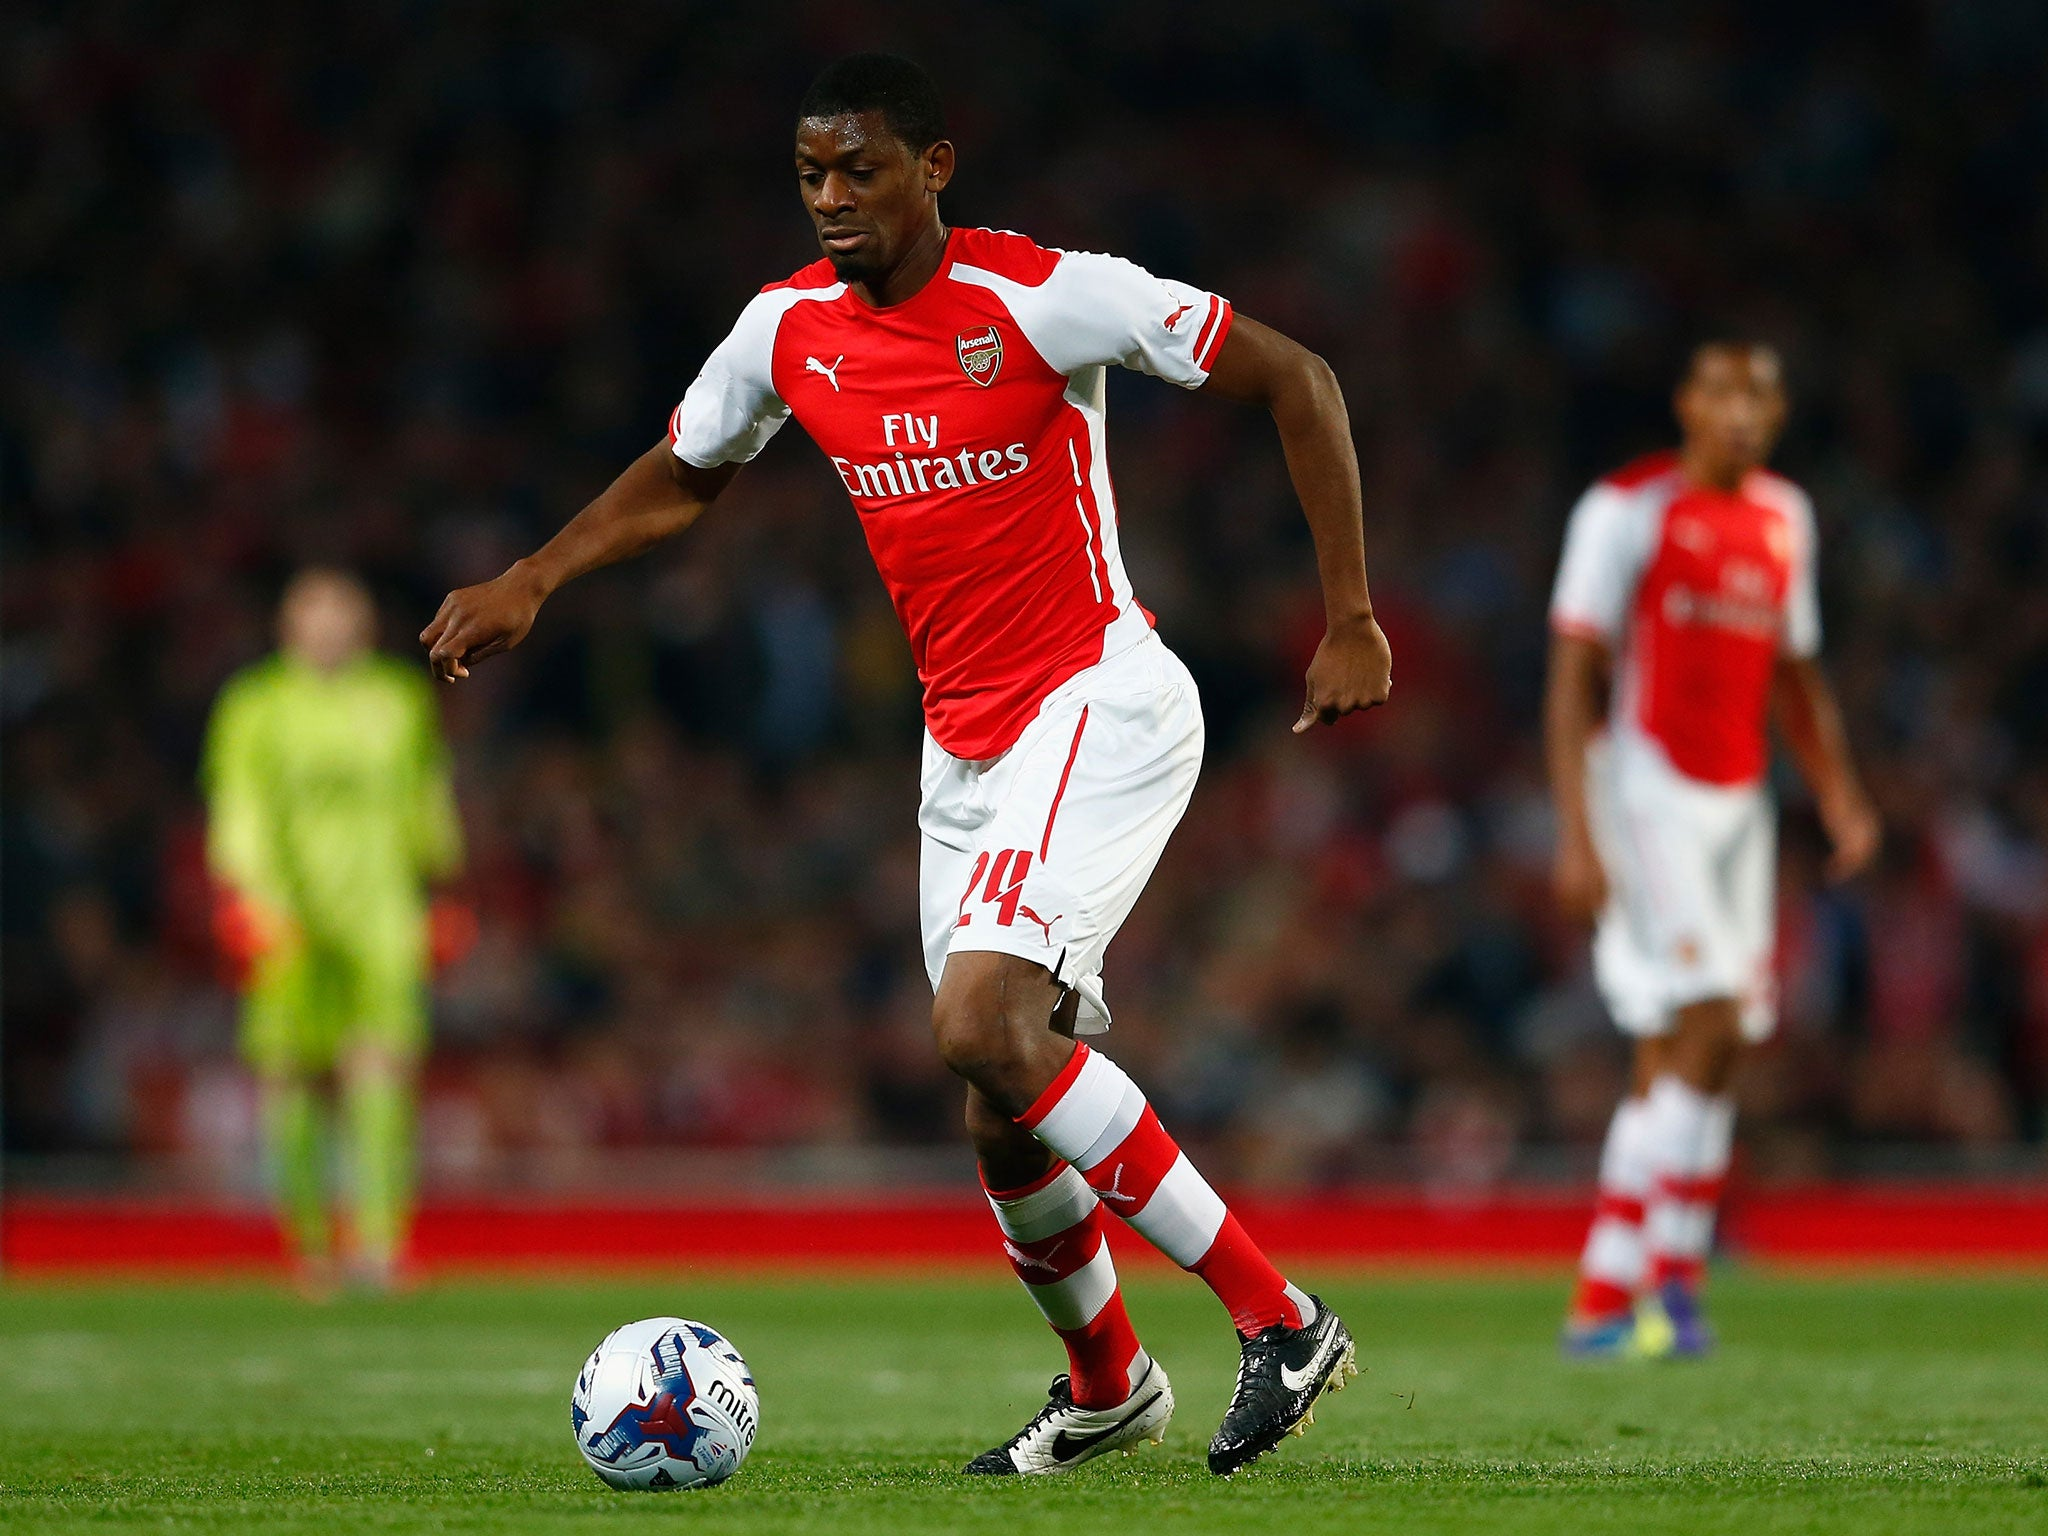 Abou Diaby released by Arsenal Gunners release perennially